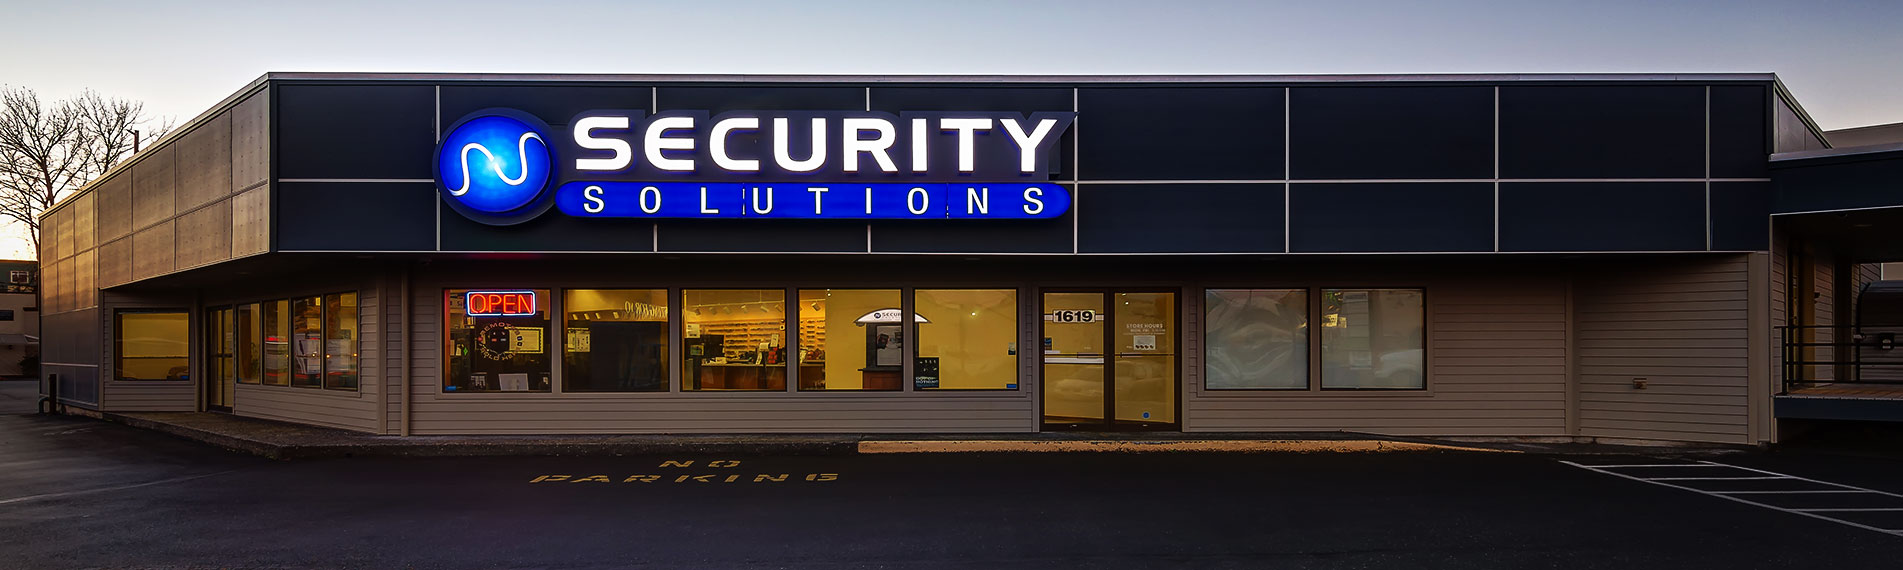 slider-security-solutions